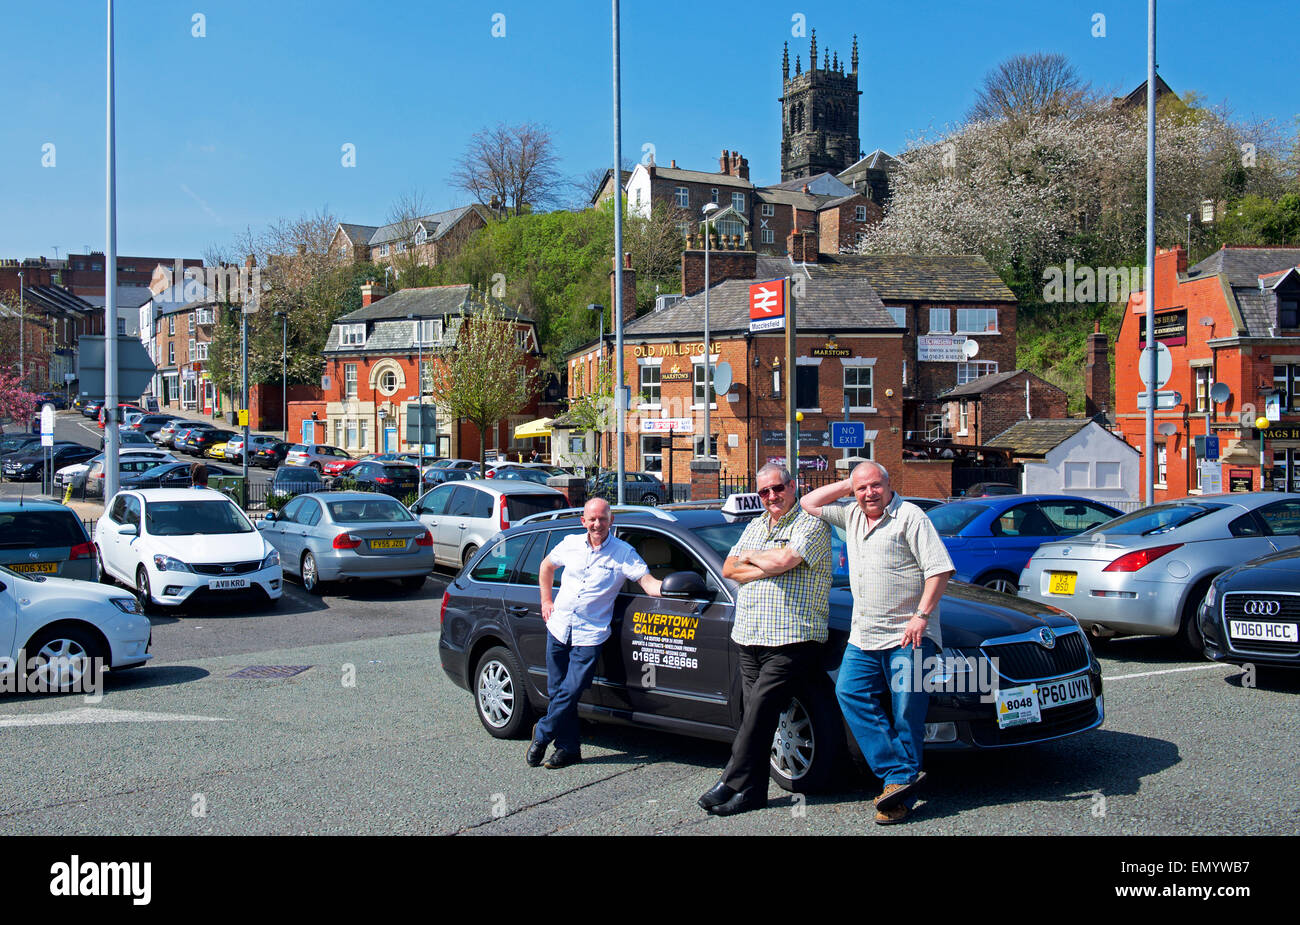 Taxy drivers in Macclesfield, Cheshire, England UK Stock Photo